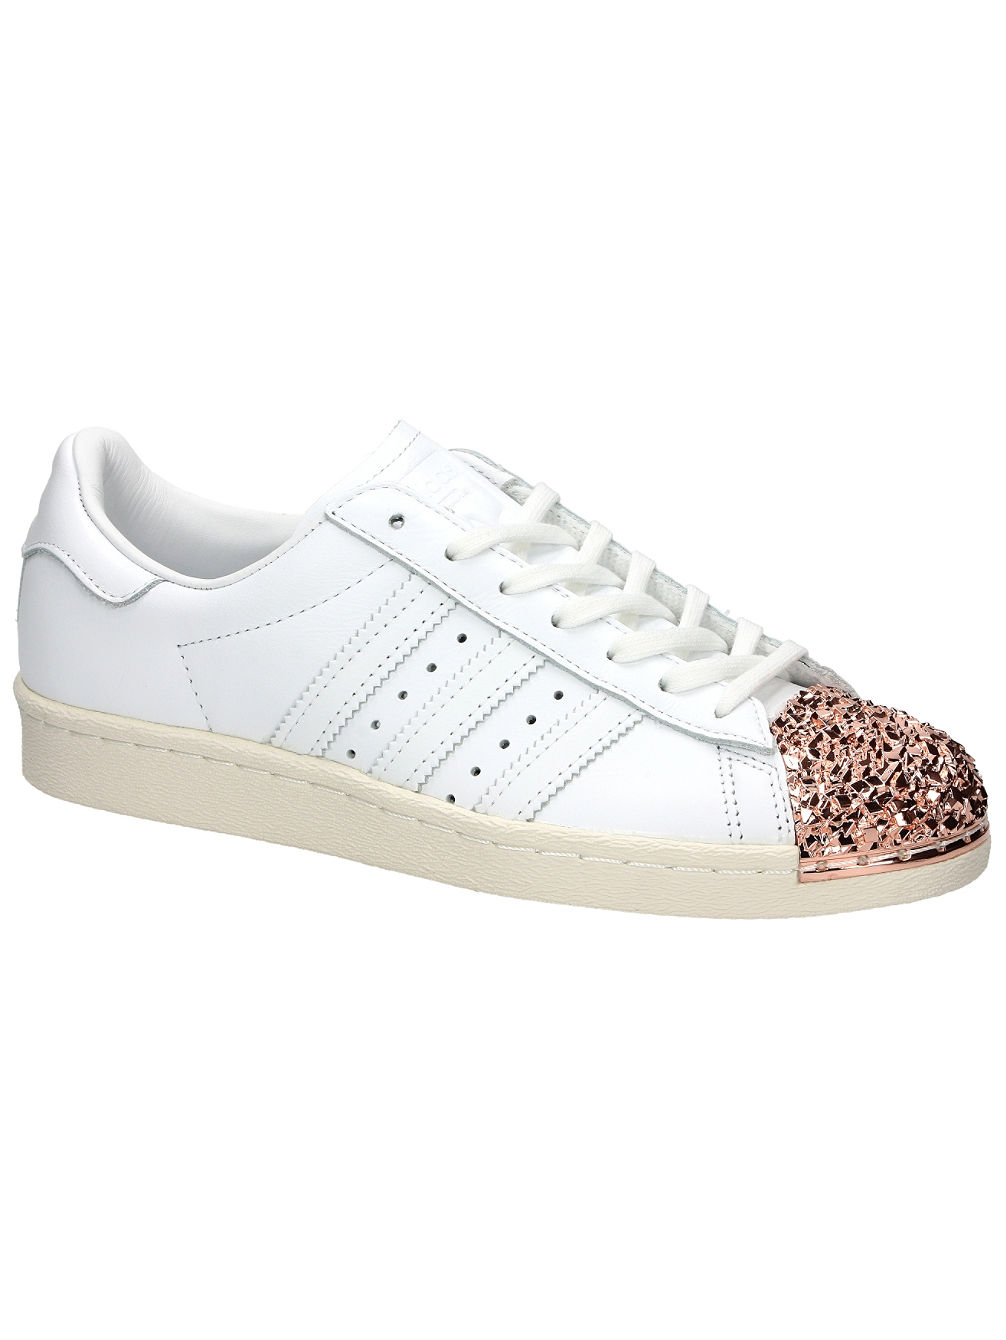 f3cba143f5 Buy adidas Originals Superstar 80s 3D Mt W Sneakers Women online at Blue  Tomato